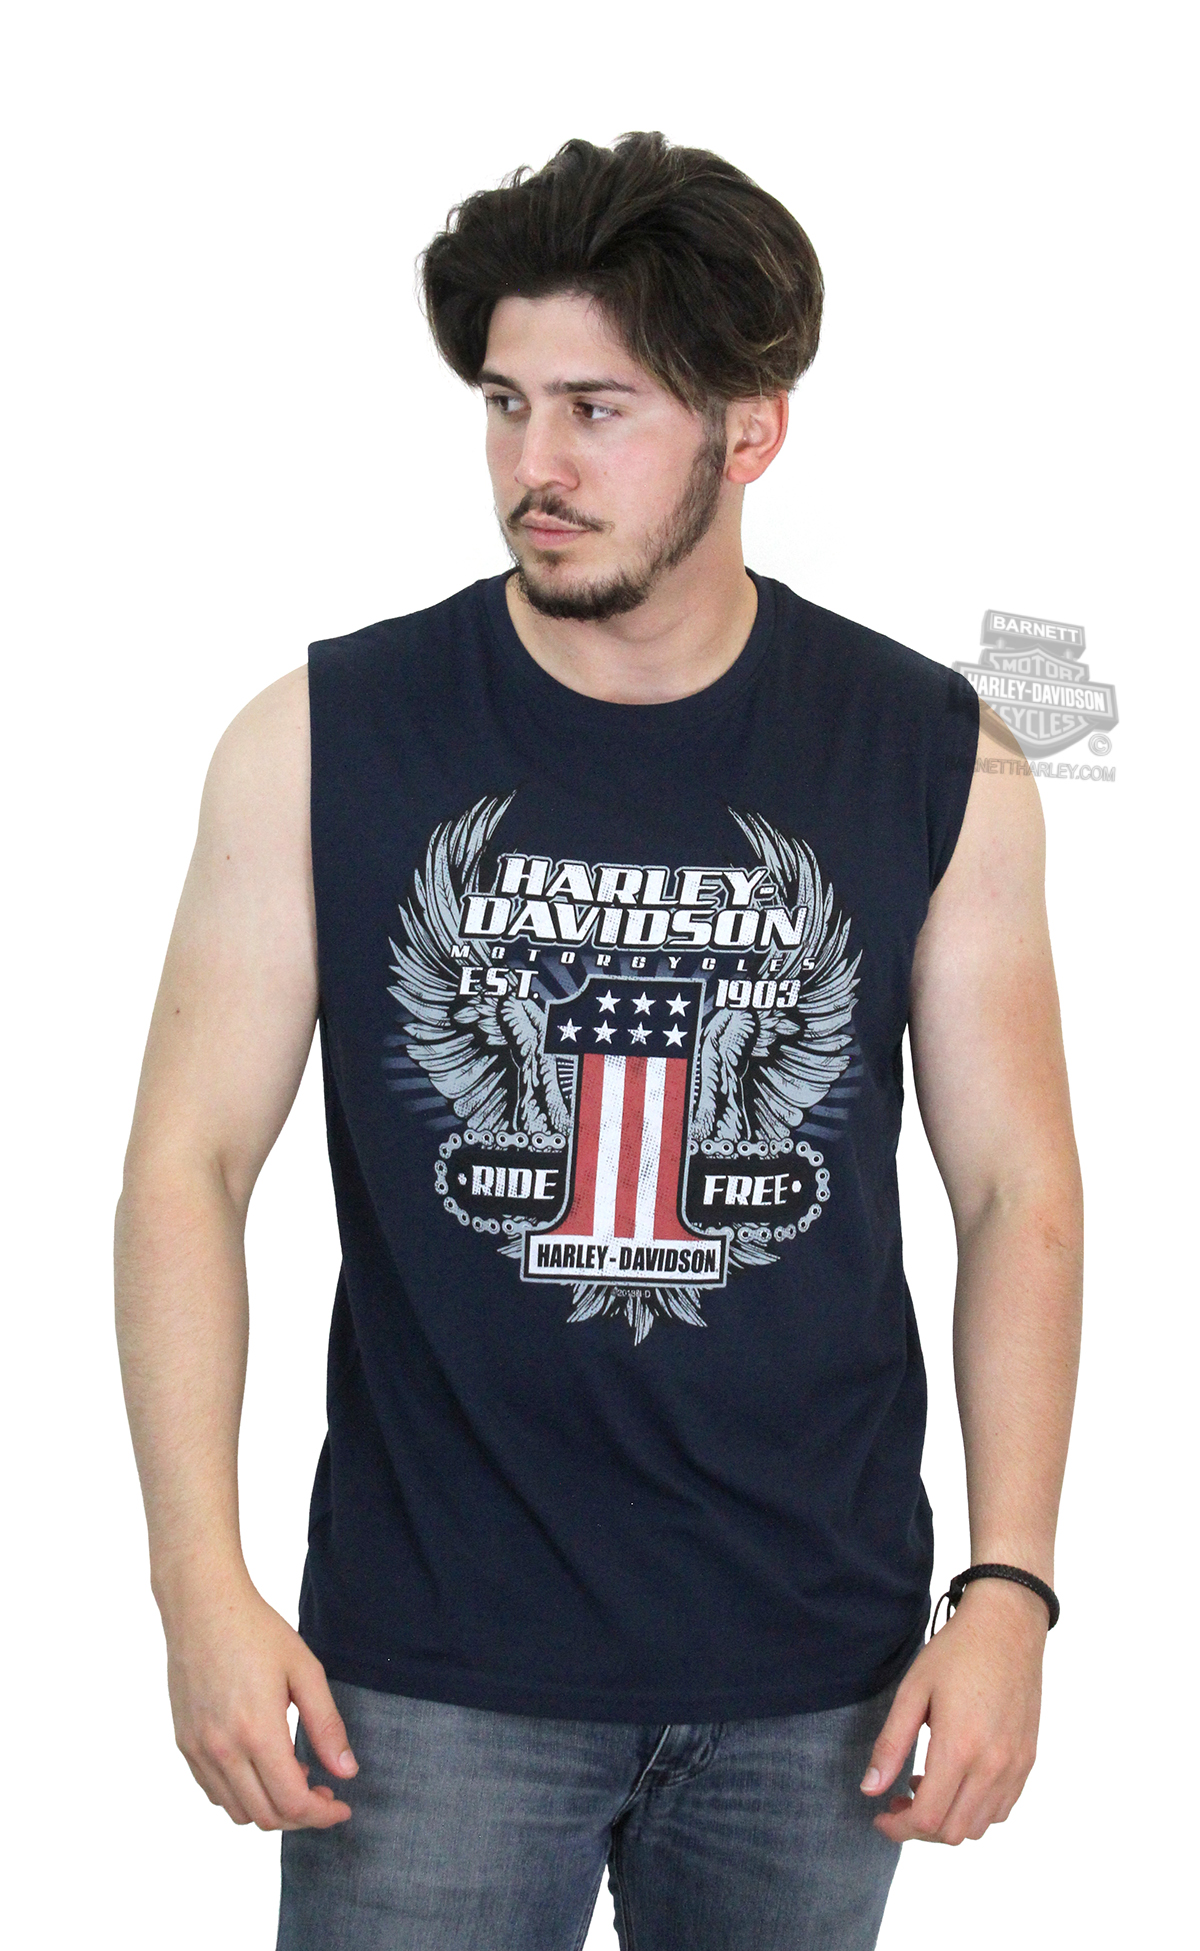 0bb1f2d7 Harley-Davidson® Mens Daredevil Winged #1 Logo Navy Sleeveless Muscle T- Shirt